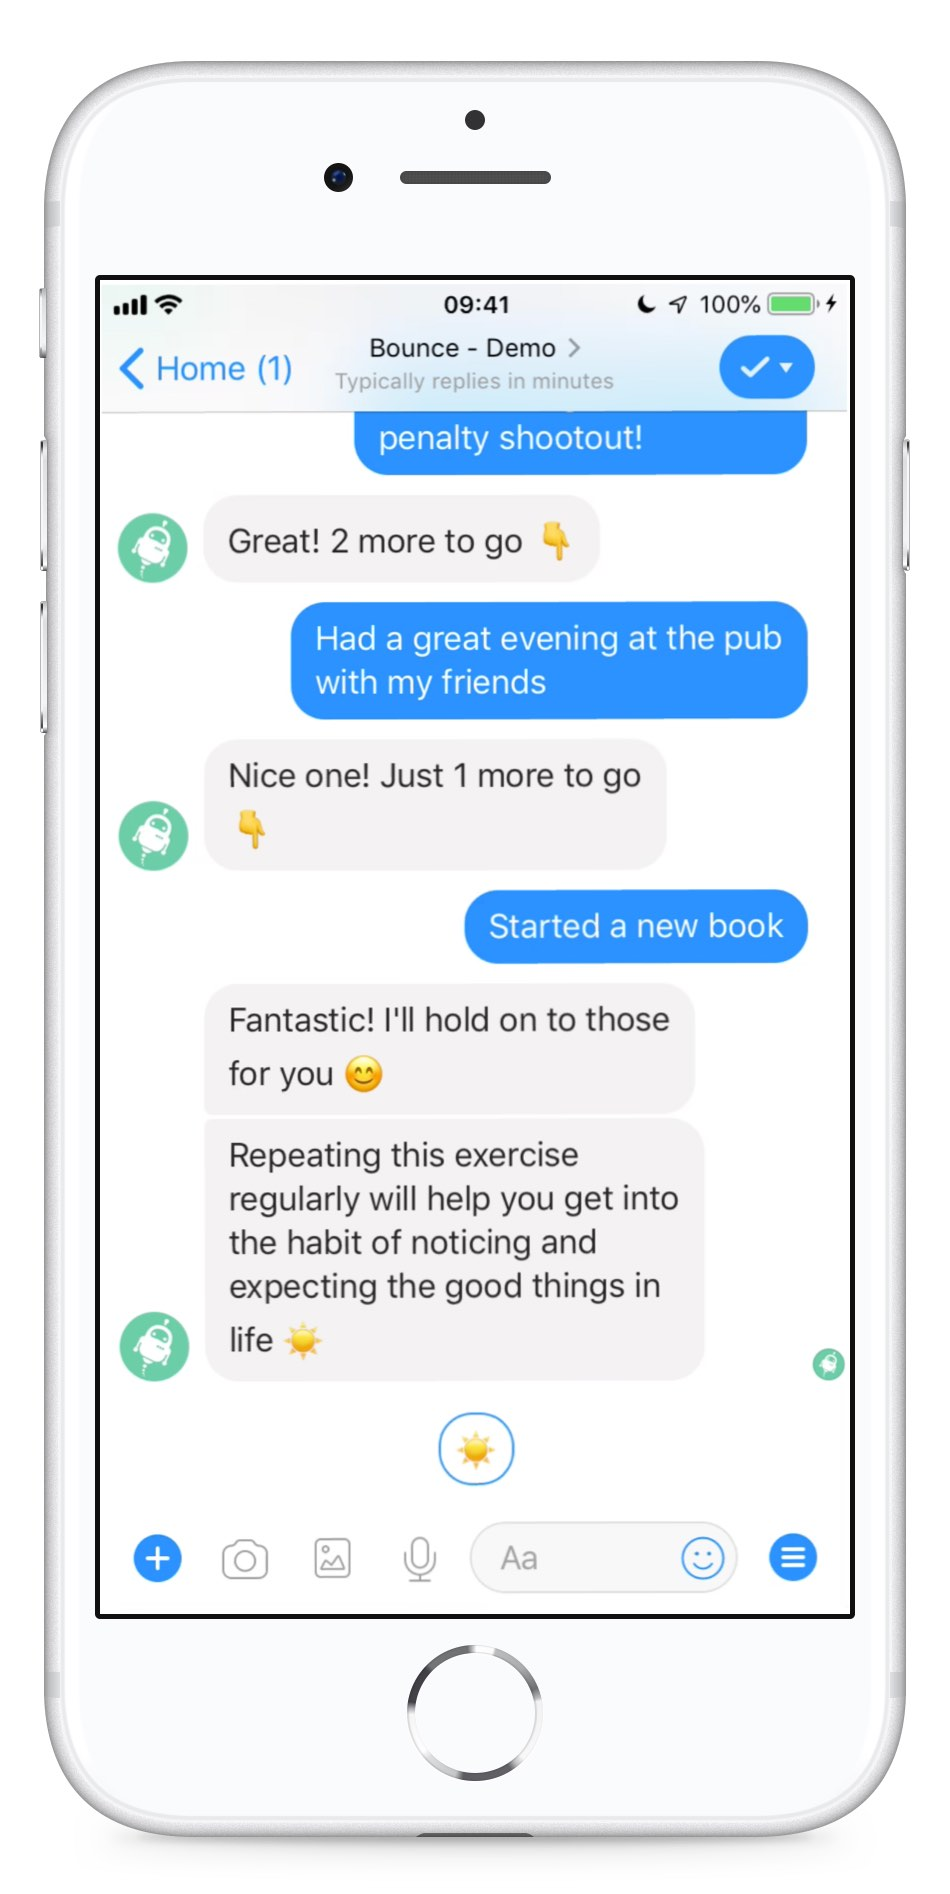 Bounce chat in in Facebook Messenger